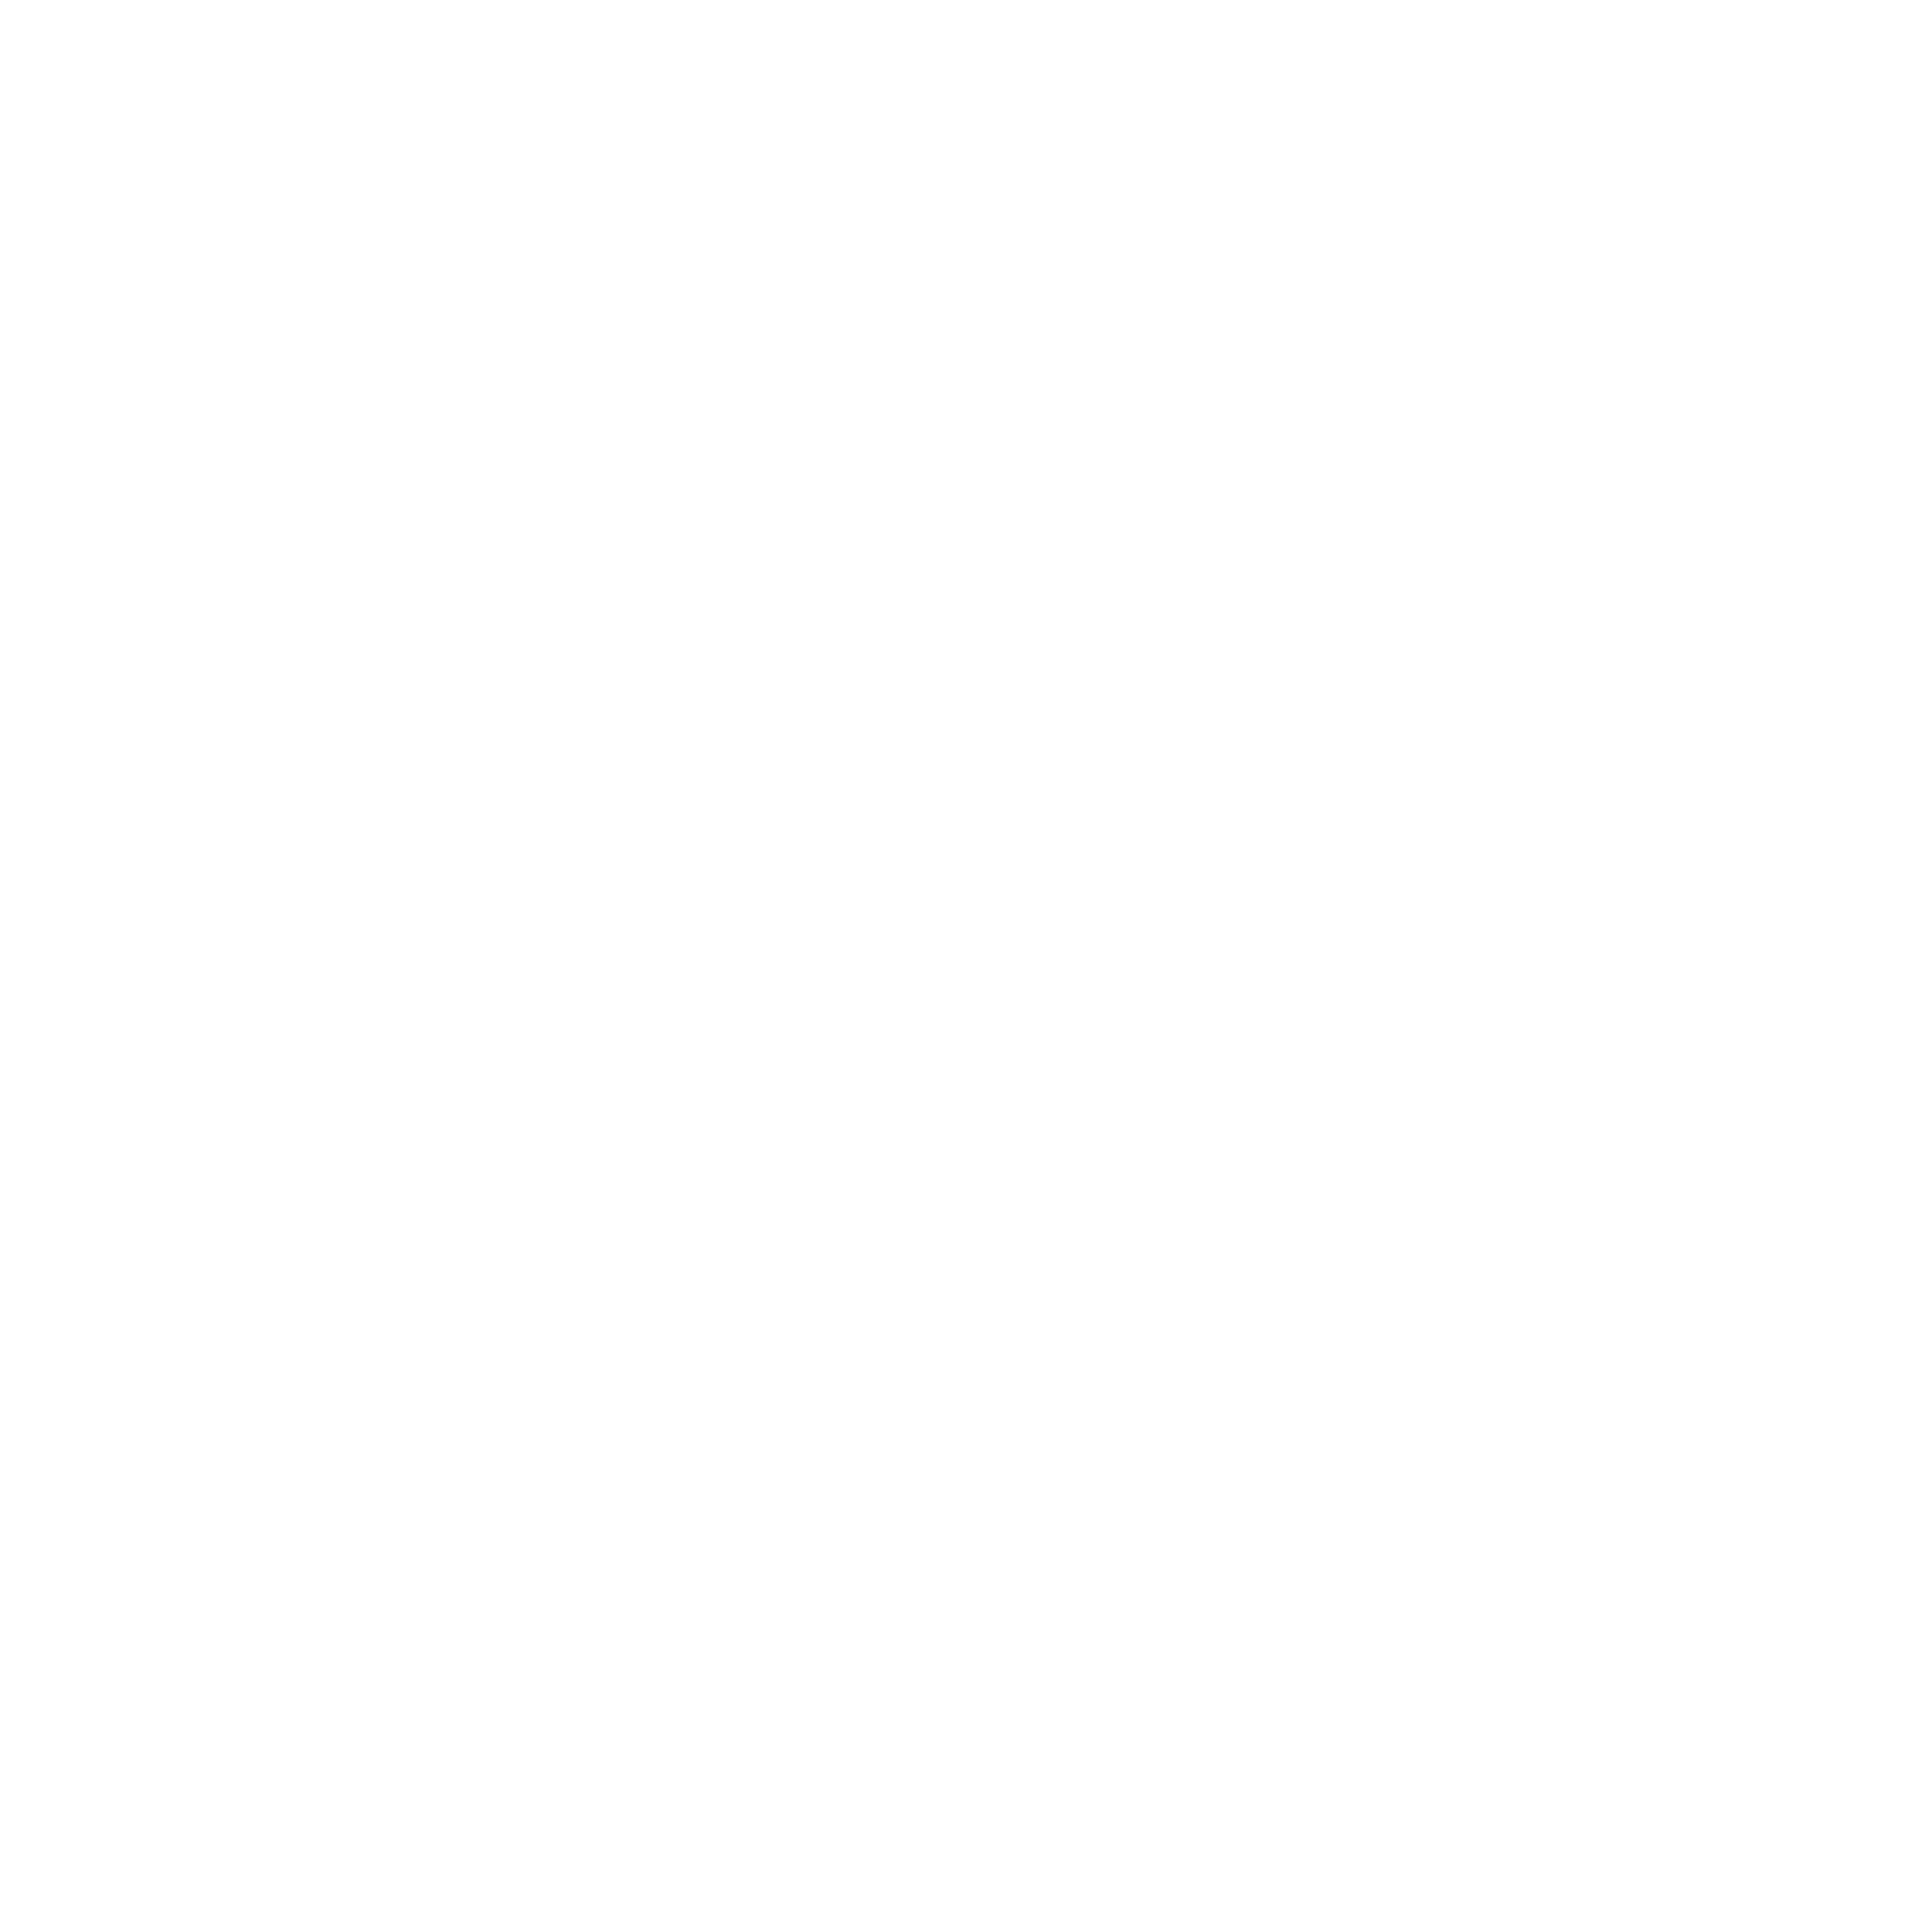 Al Rajhi First Construction